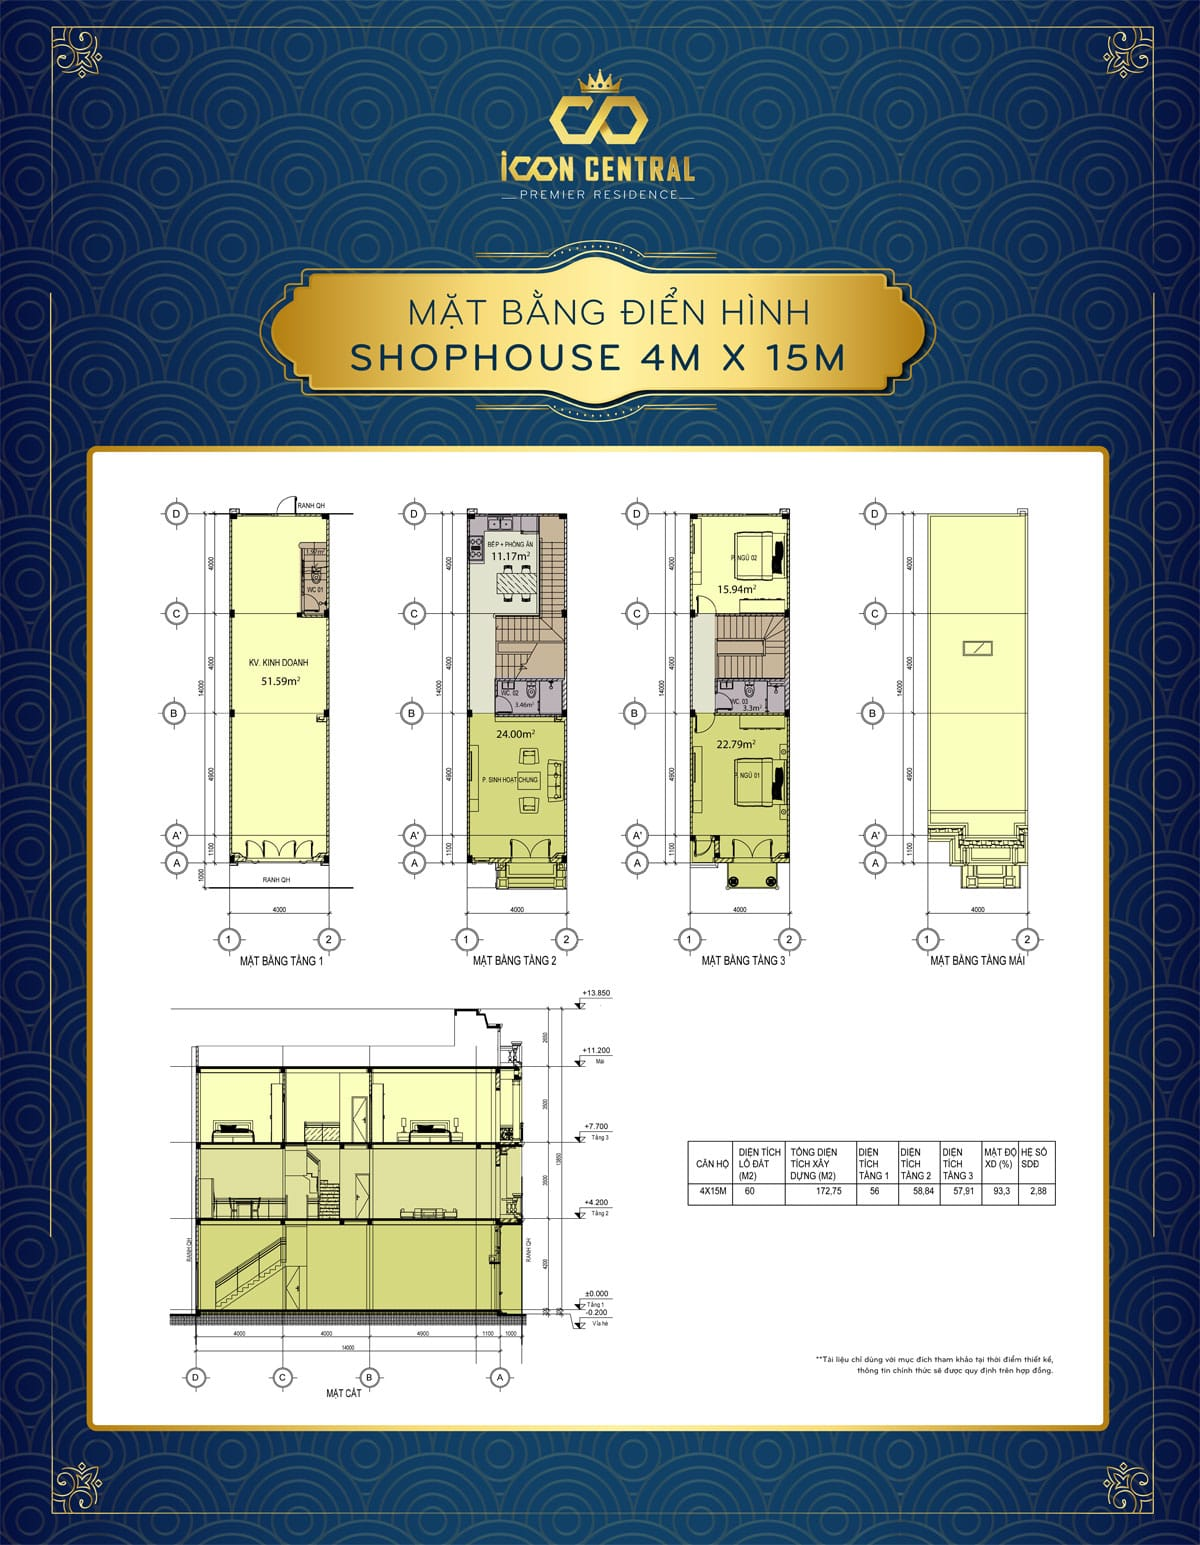 mat bang dien hinh shophouse 4 x 15m icon central - SHOP OFFICE ICON CENTRAL DĨ AN BÌNH DƯƠNG